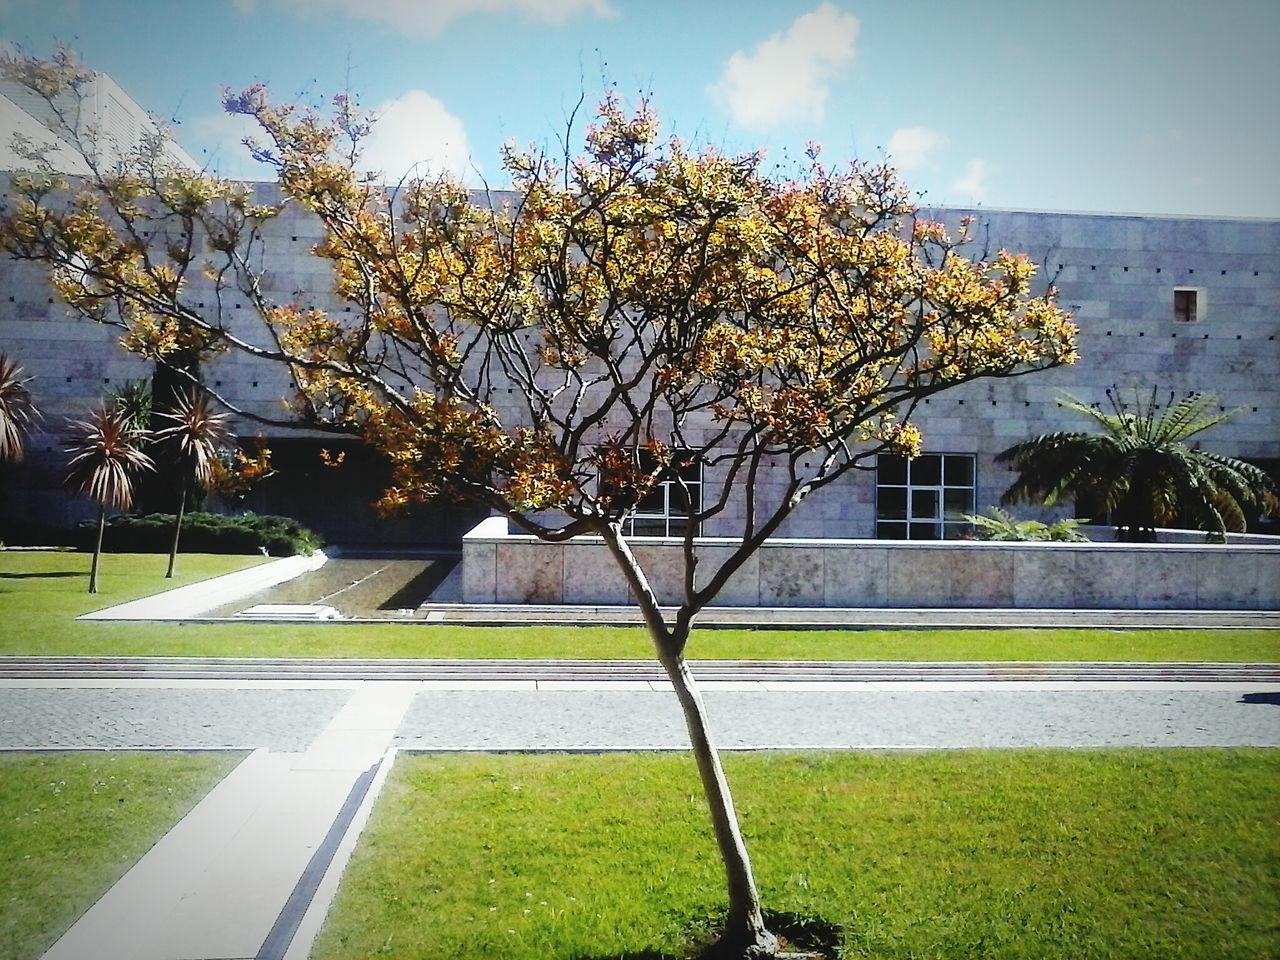 tree, no people, day, growth, grass, nature, outdoors, beauty in nature, sky, tranquility, building exterior, built structure, architecture, flower, branch, freshness